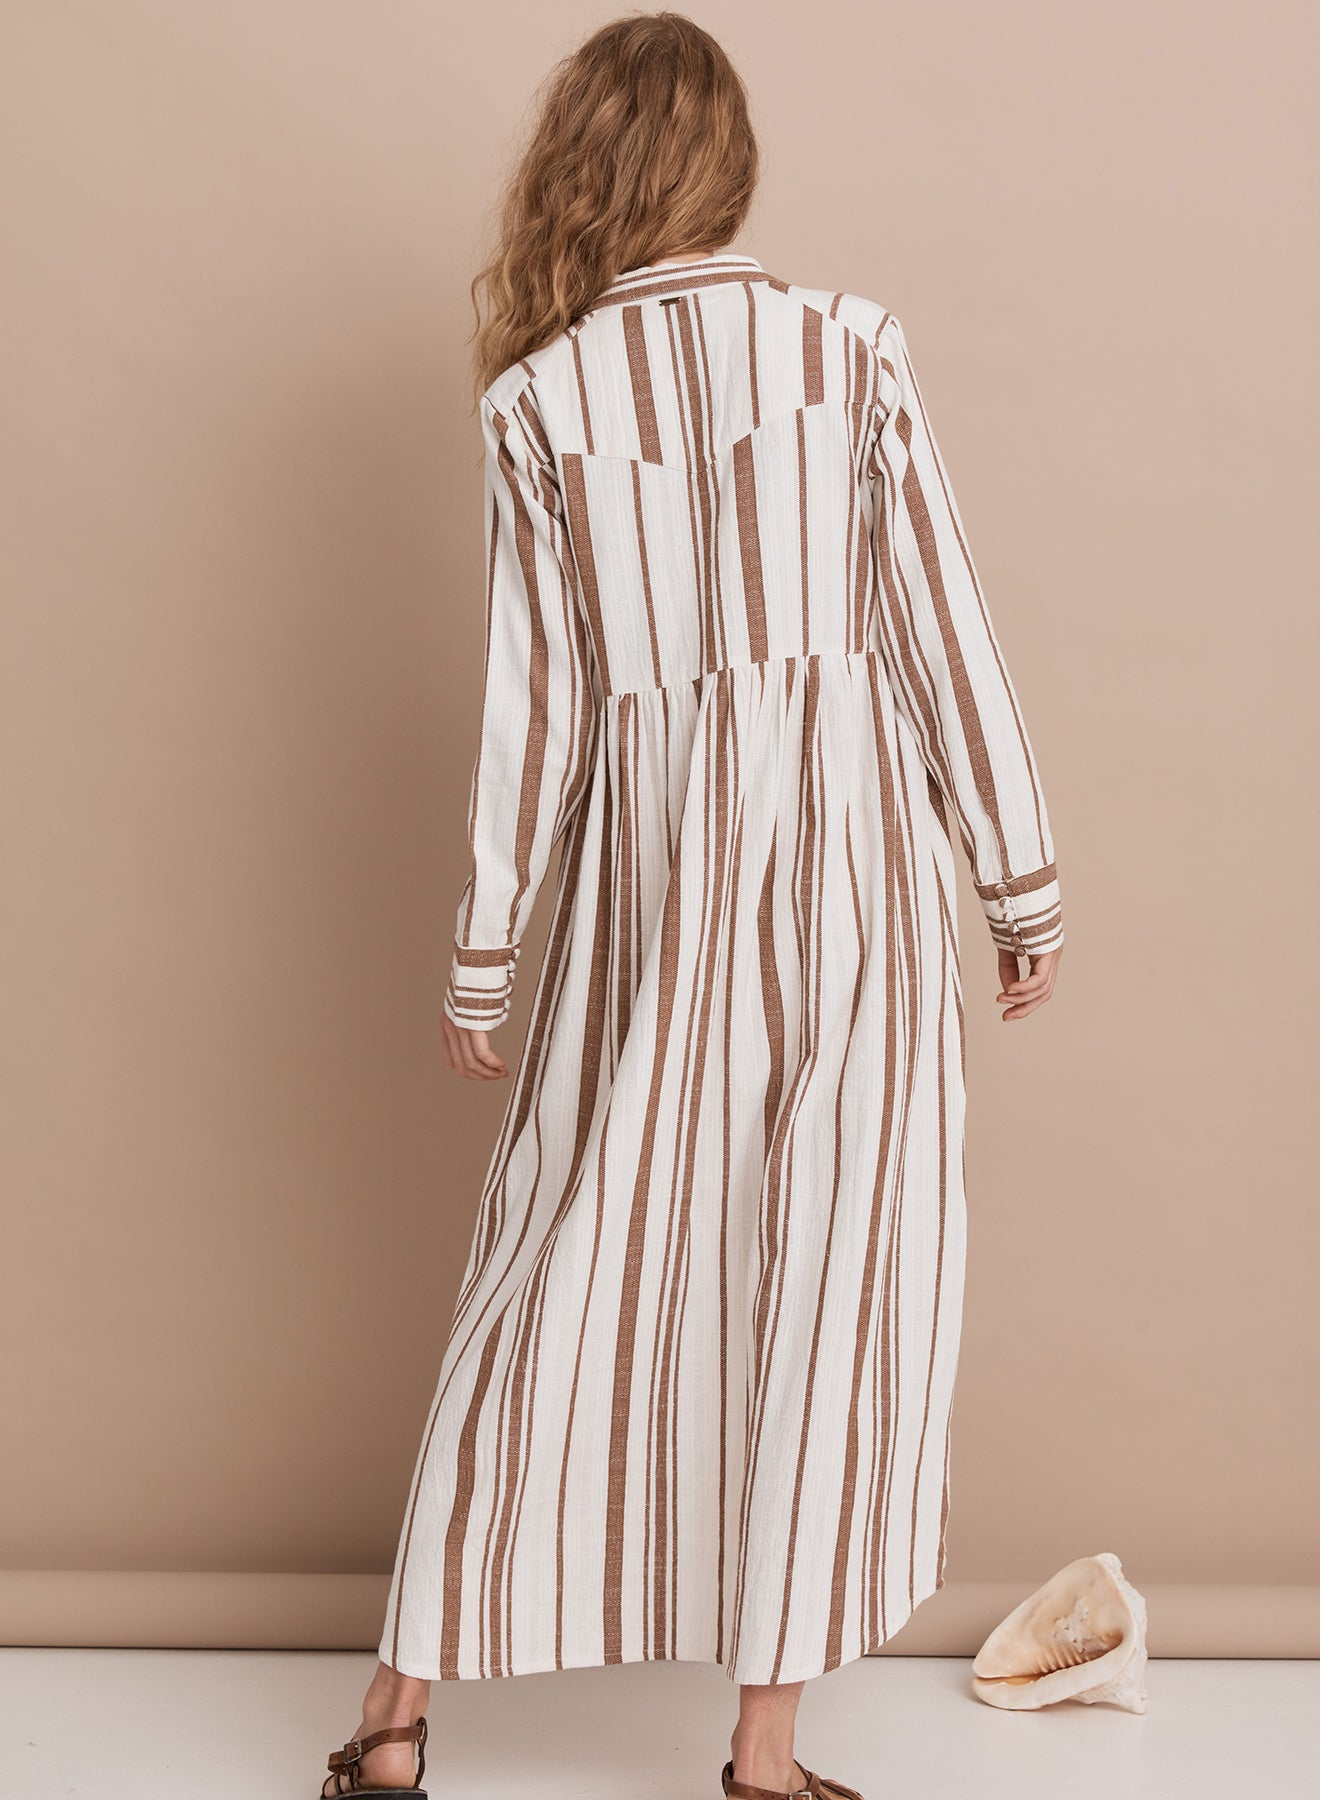 The Saint Helena Sandlines Maxi Dress